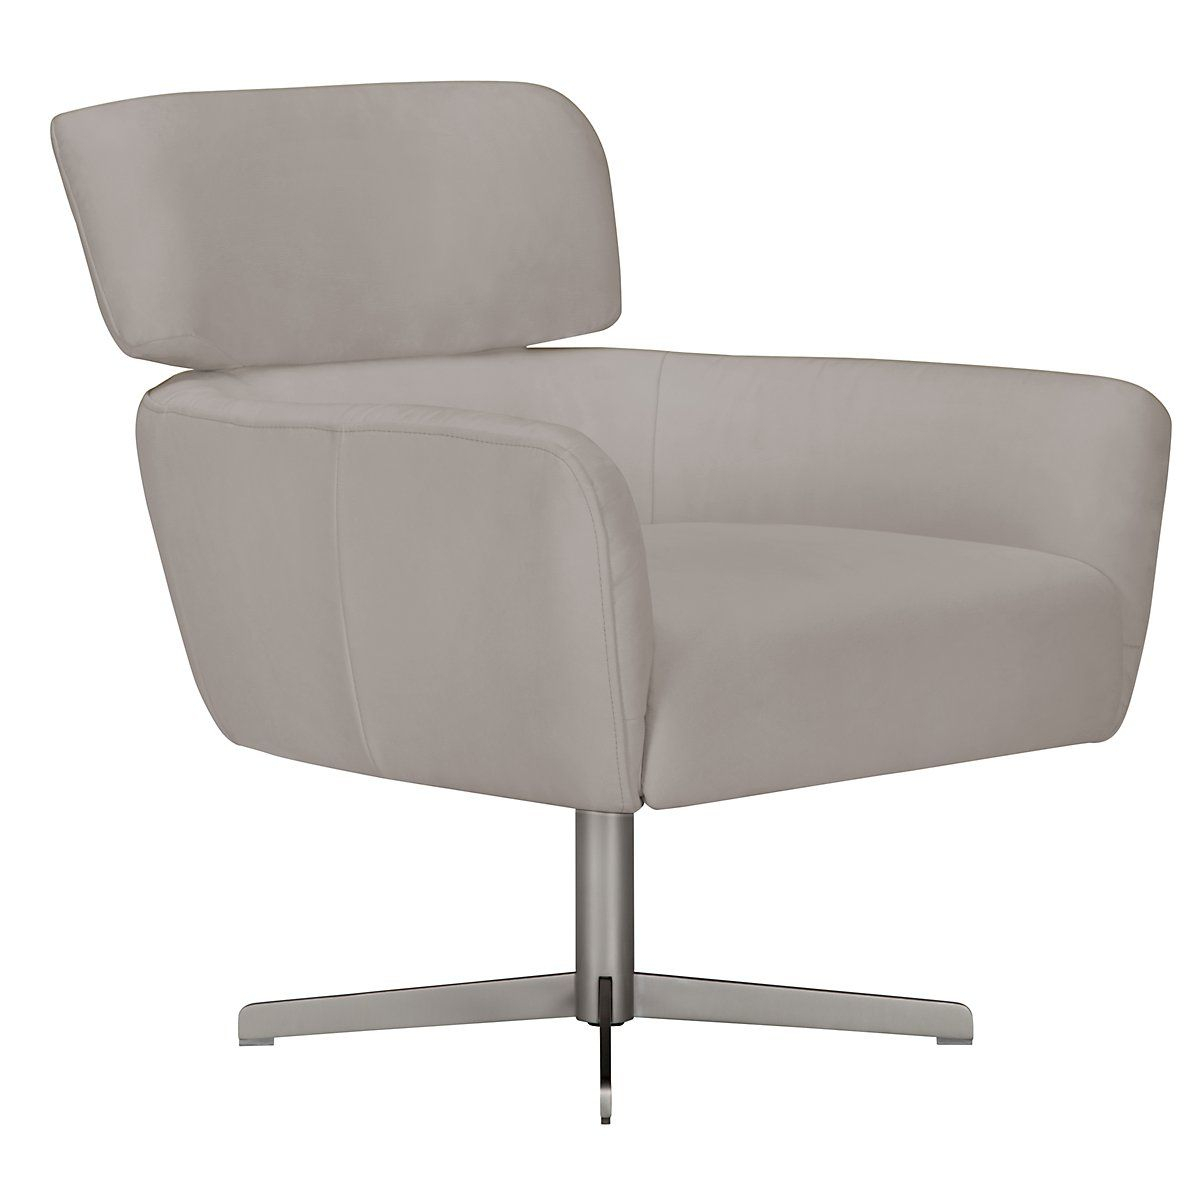 Wynn Light Gray Microfiber Swivel Accent Chair | Living Room With Regard To Aidan Ii Swivel Accent Chairs (View 5 of 25)